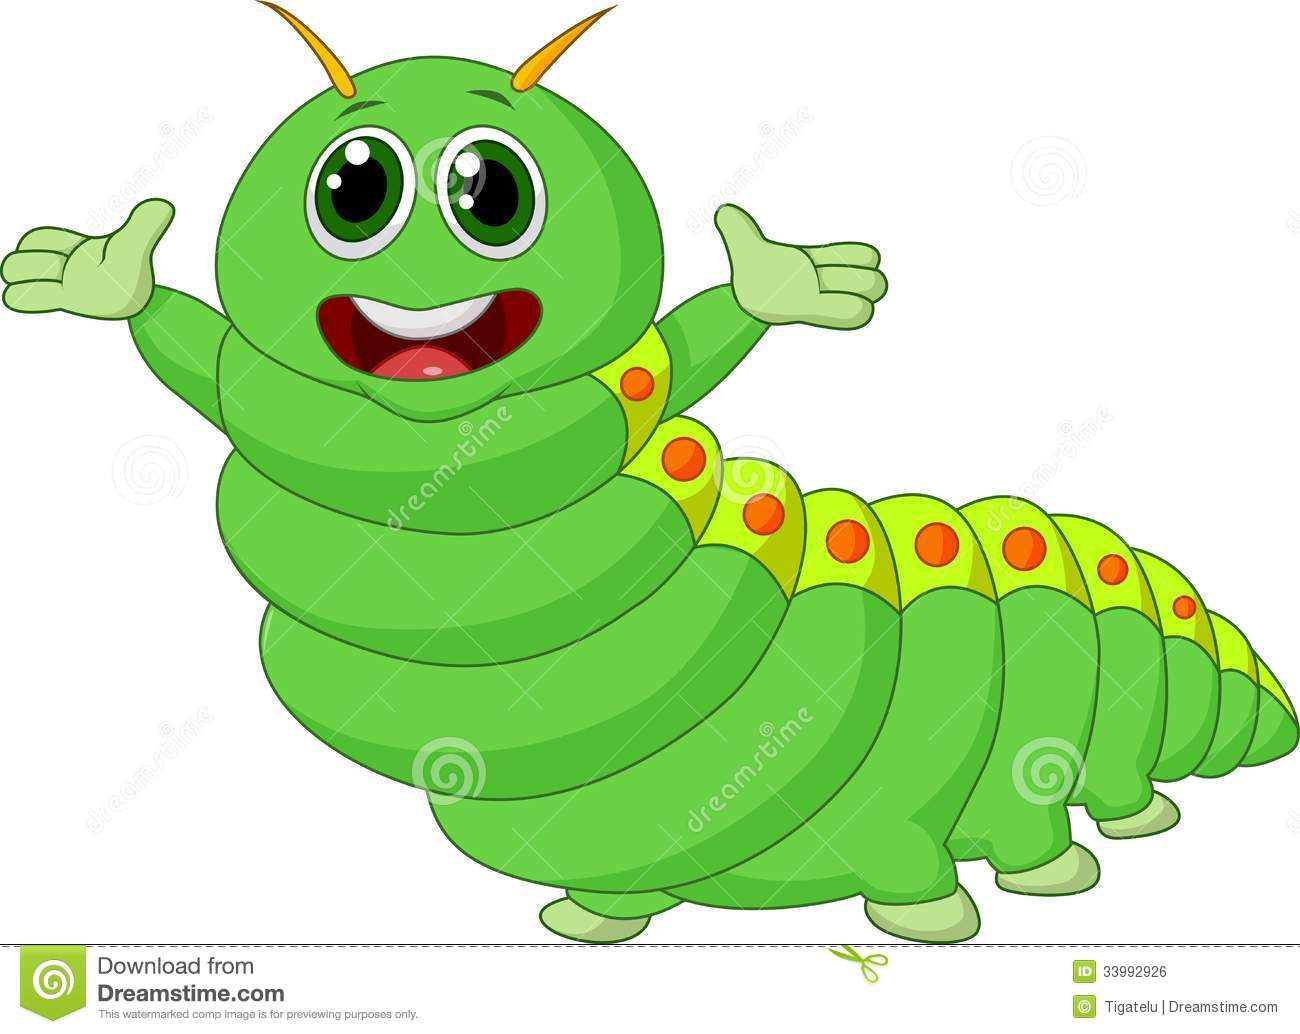 http://thumbs.dreamstime.com/z/cute-caterpillar-cartoon-illustration-33992926.jpg